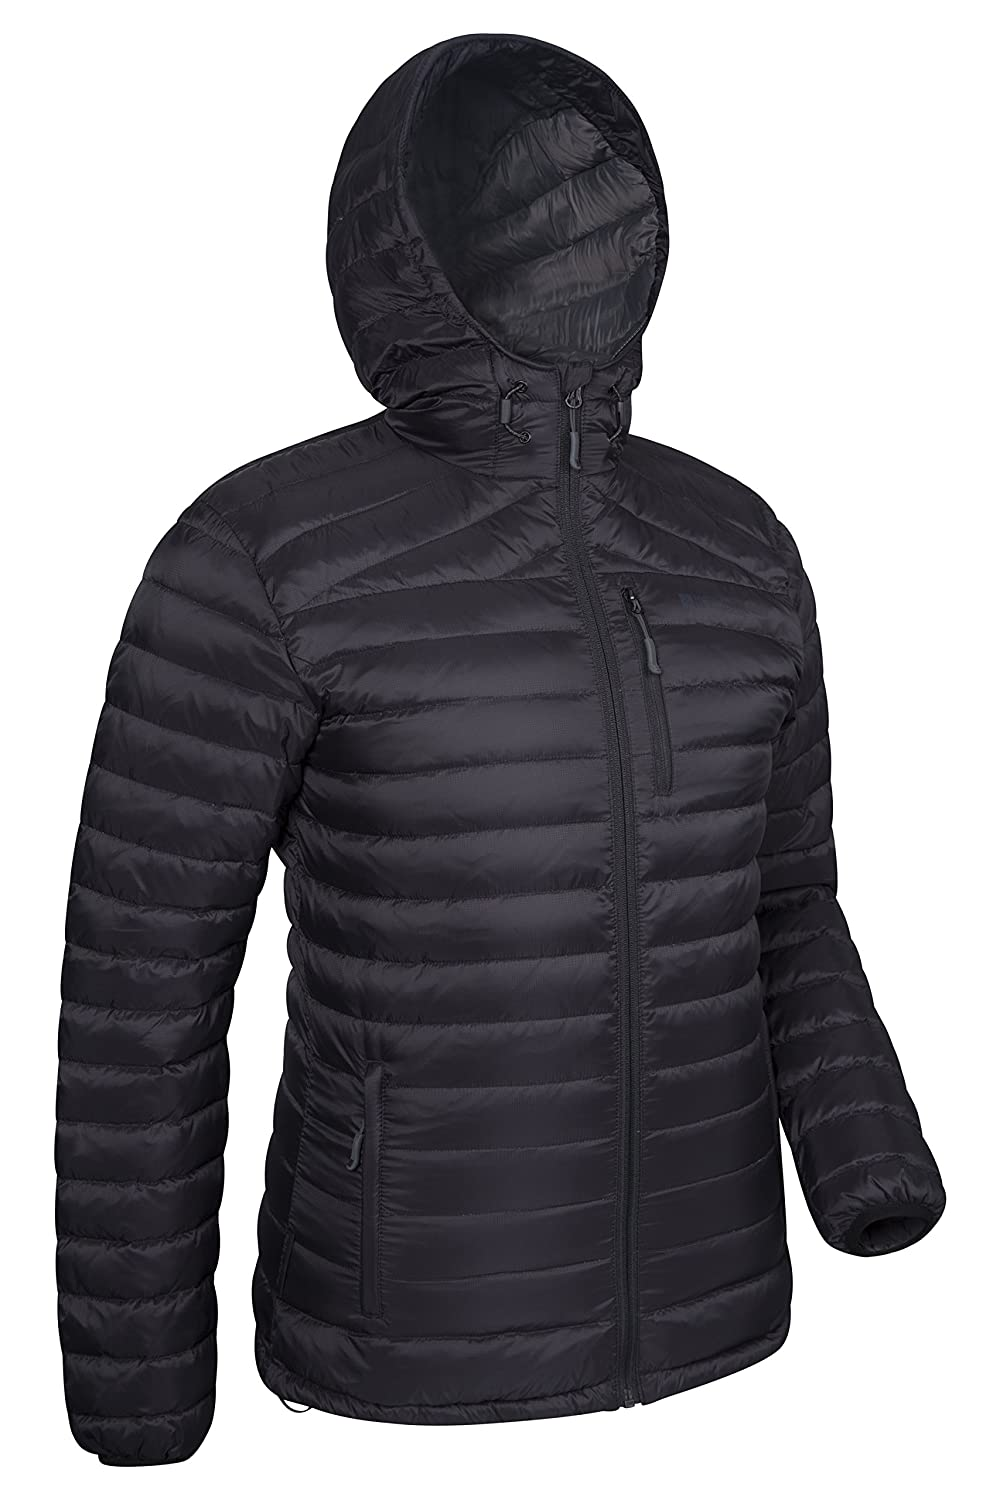 fe59b5e7cf2 Mountain Warehouse Henry Mens Down Padded Winter Jacket - Hooded Black  X-Large: Amazon.ca: Sports & Outdoors